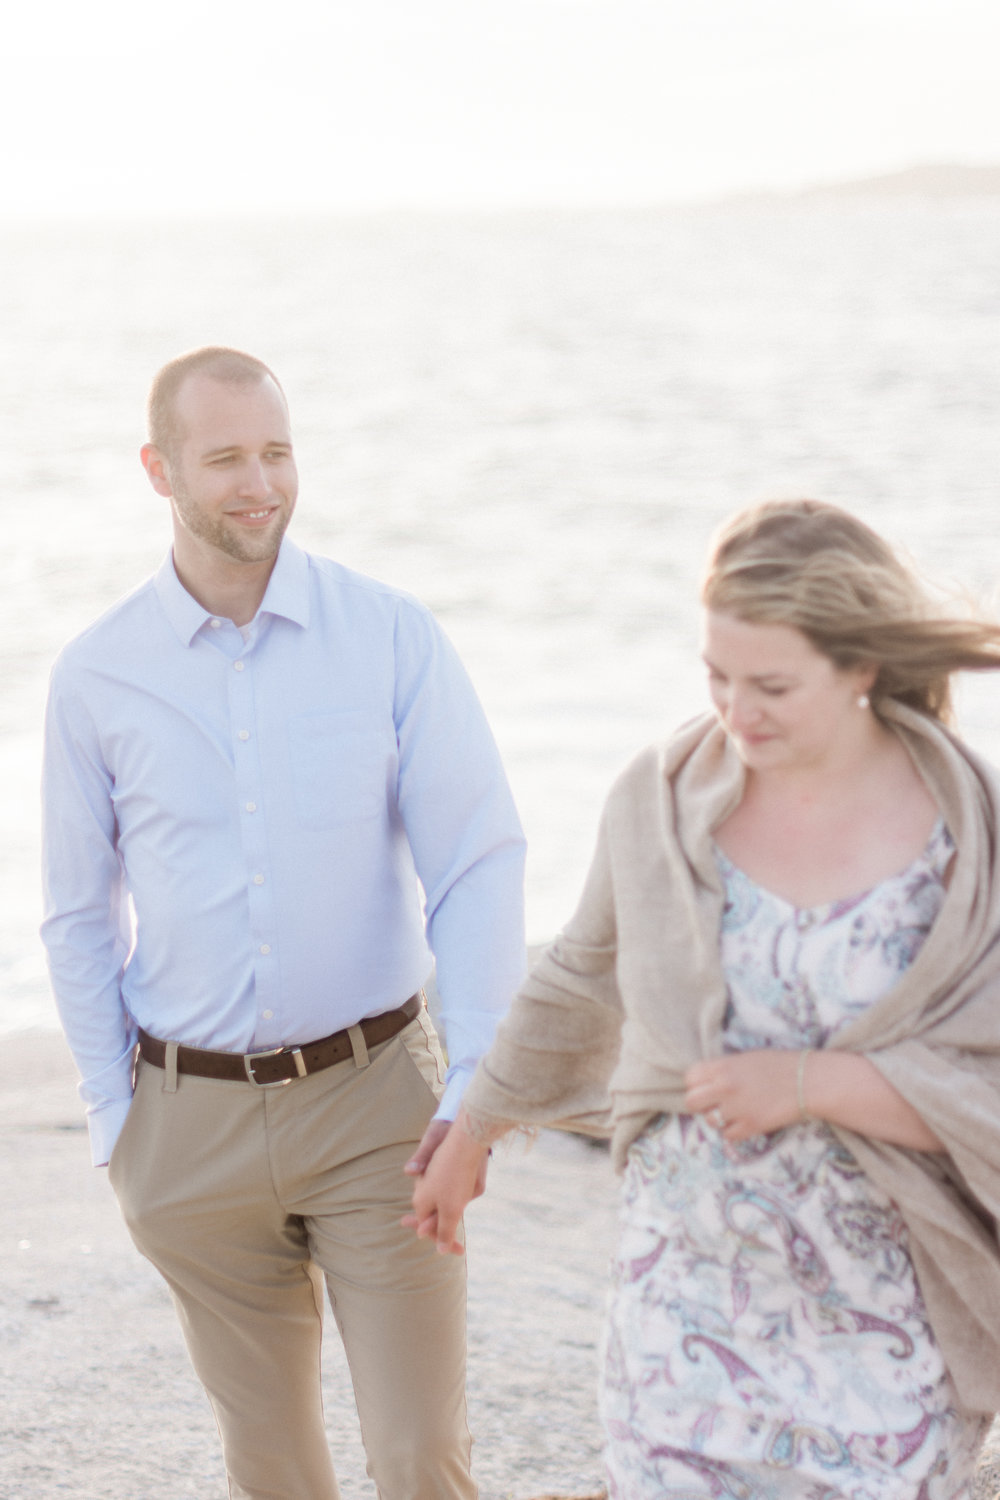 Jacqueline Anne Photography - Alex and Andrew Engagement at Peggy's Cove - Halifax-30.jpg